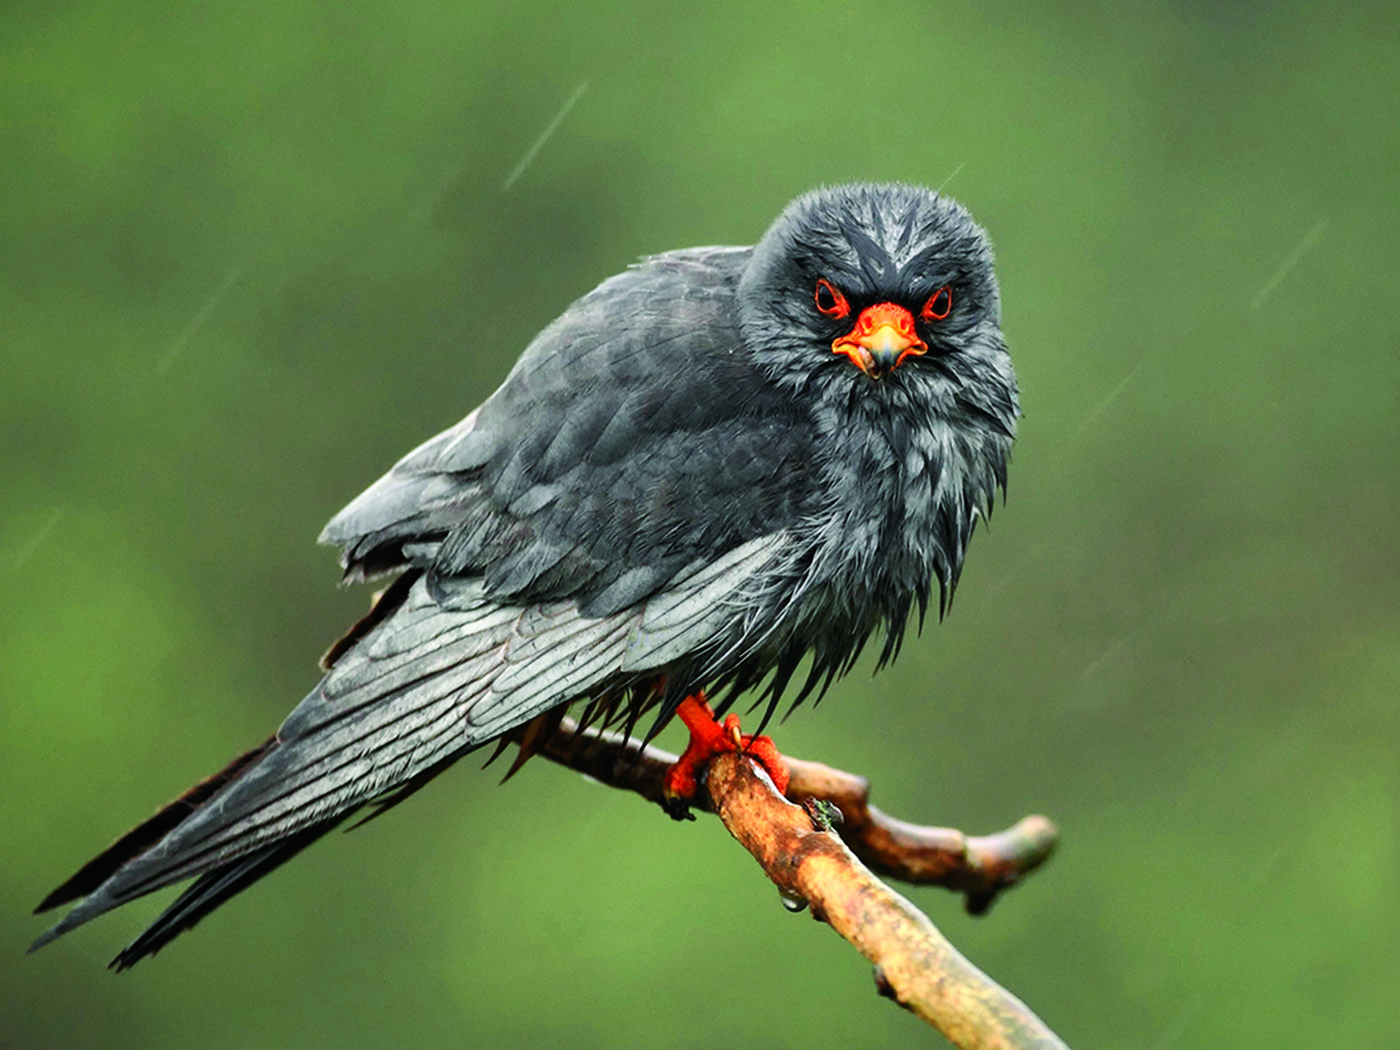 Red Footed Falcon in Rain by Mick Books